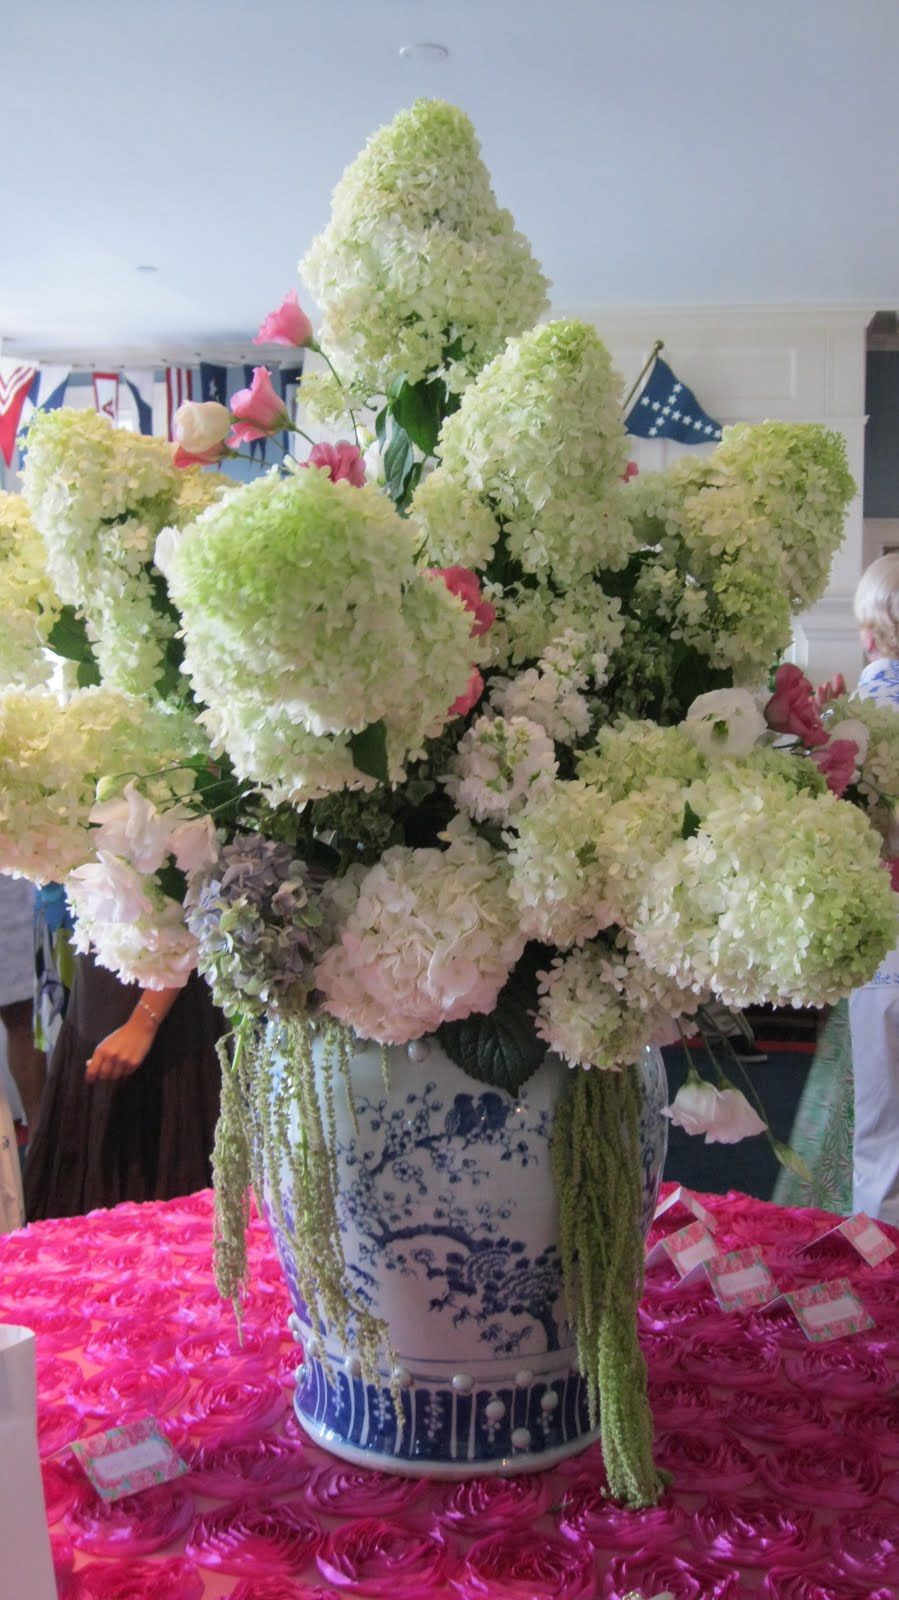 Hydrangea Flowers In A Vase Of Hydrangeas I Remember My Grandmother Had 2 Huge Ones In Her Front within Hydrangeas I Remember My Grandmother Had 2 Huge Ones In Her Front Yard